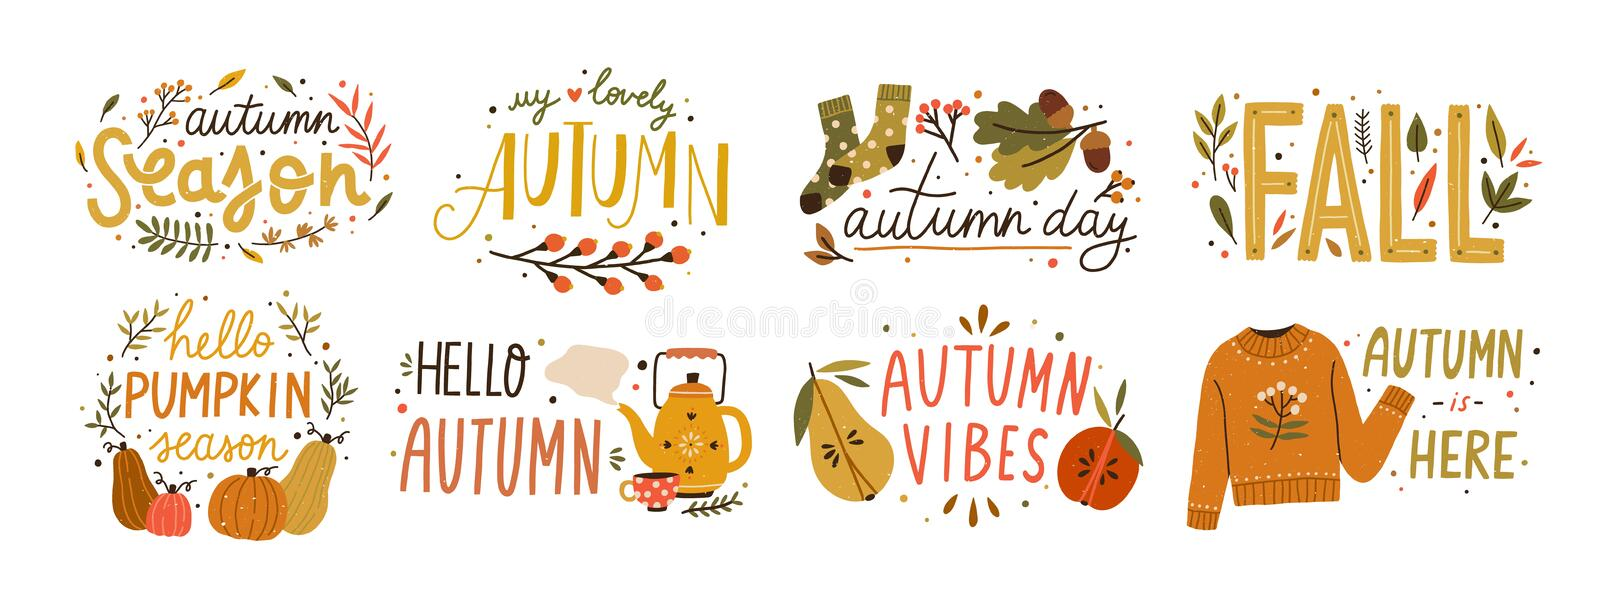 Autumn hand drawn lettering vector set. Fall season handwritten slogan stickers pack. Autumn phrases with cute and cozy vector illustration